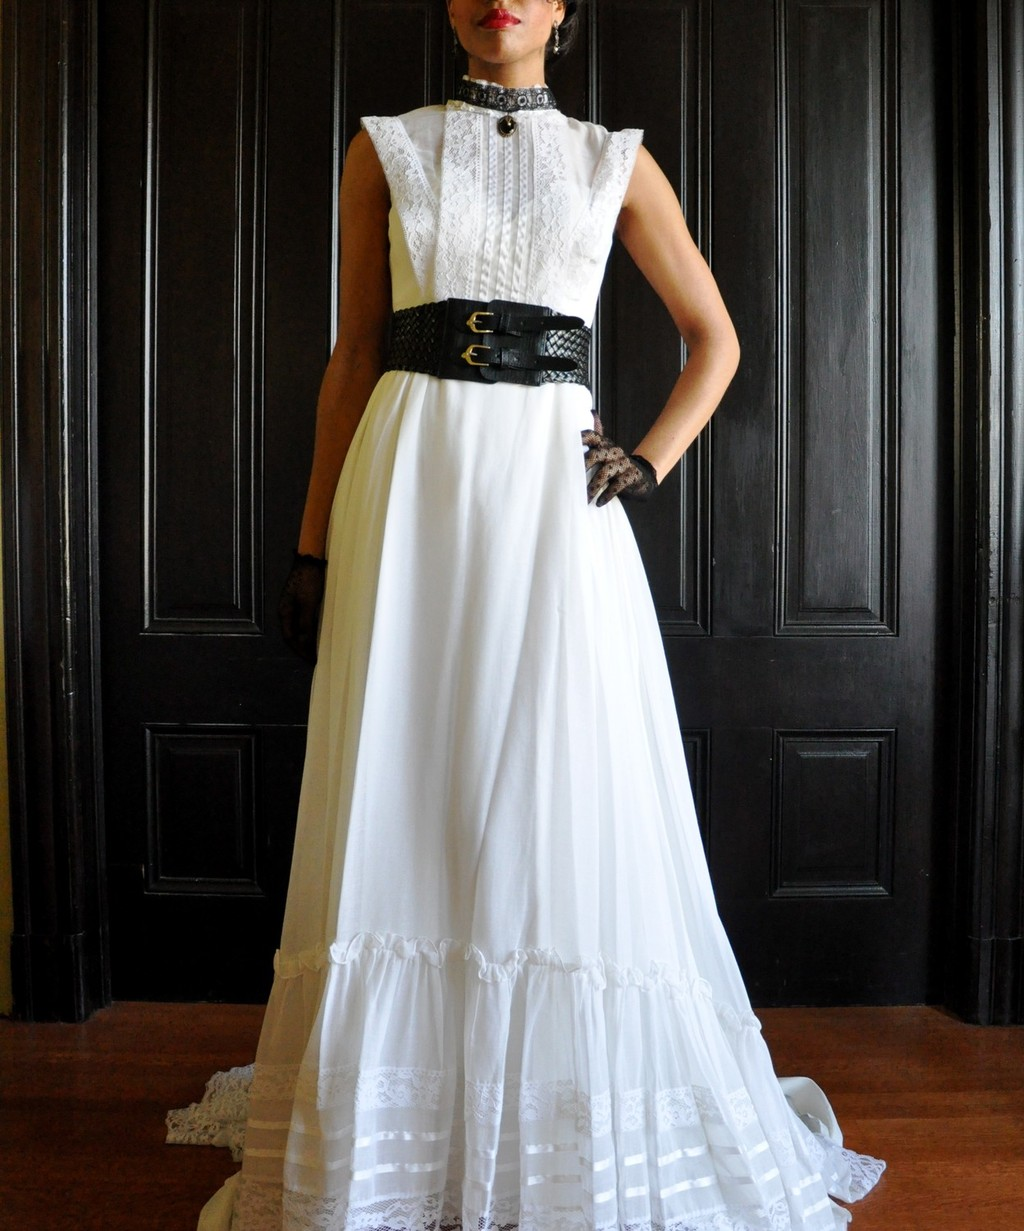 Vintage-wedding-dress-bridal-gown-inspiration-from-etsy-steampunk-black-accessories.full